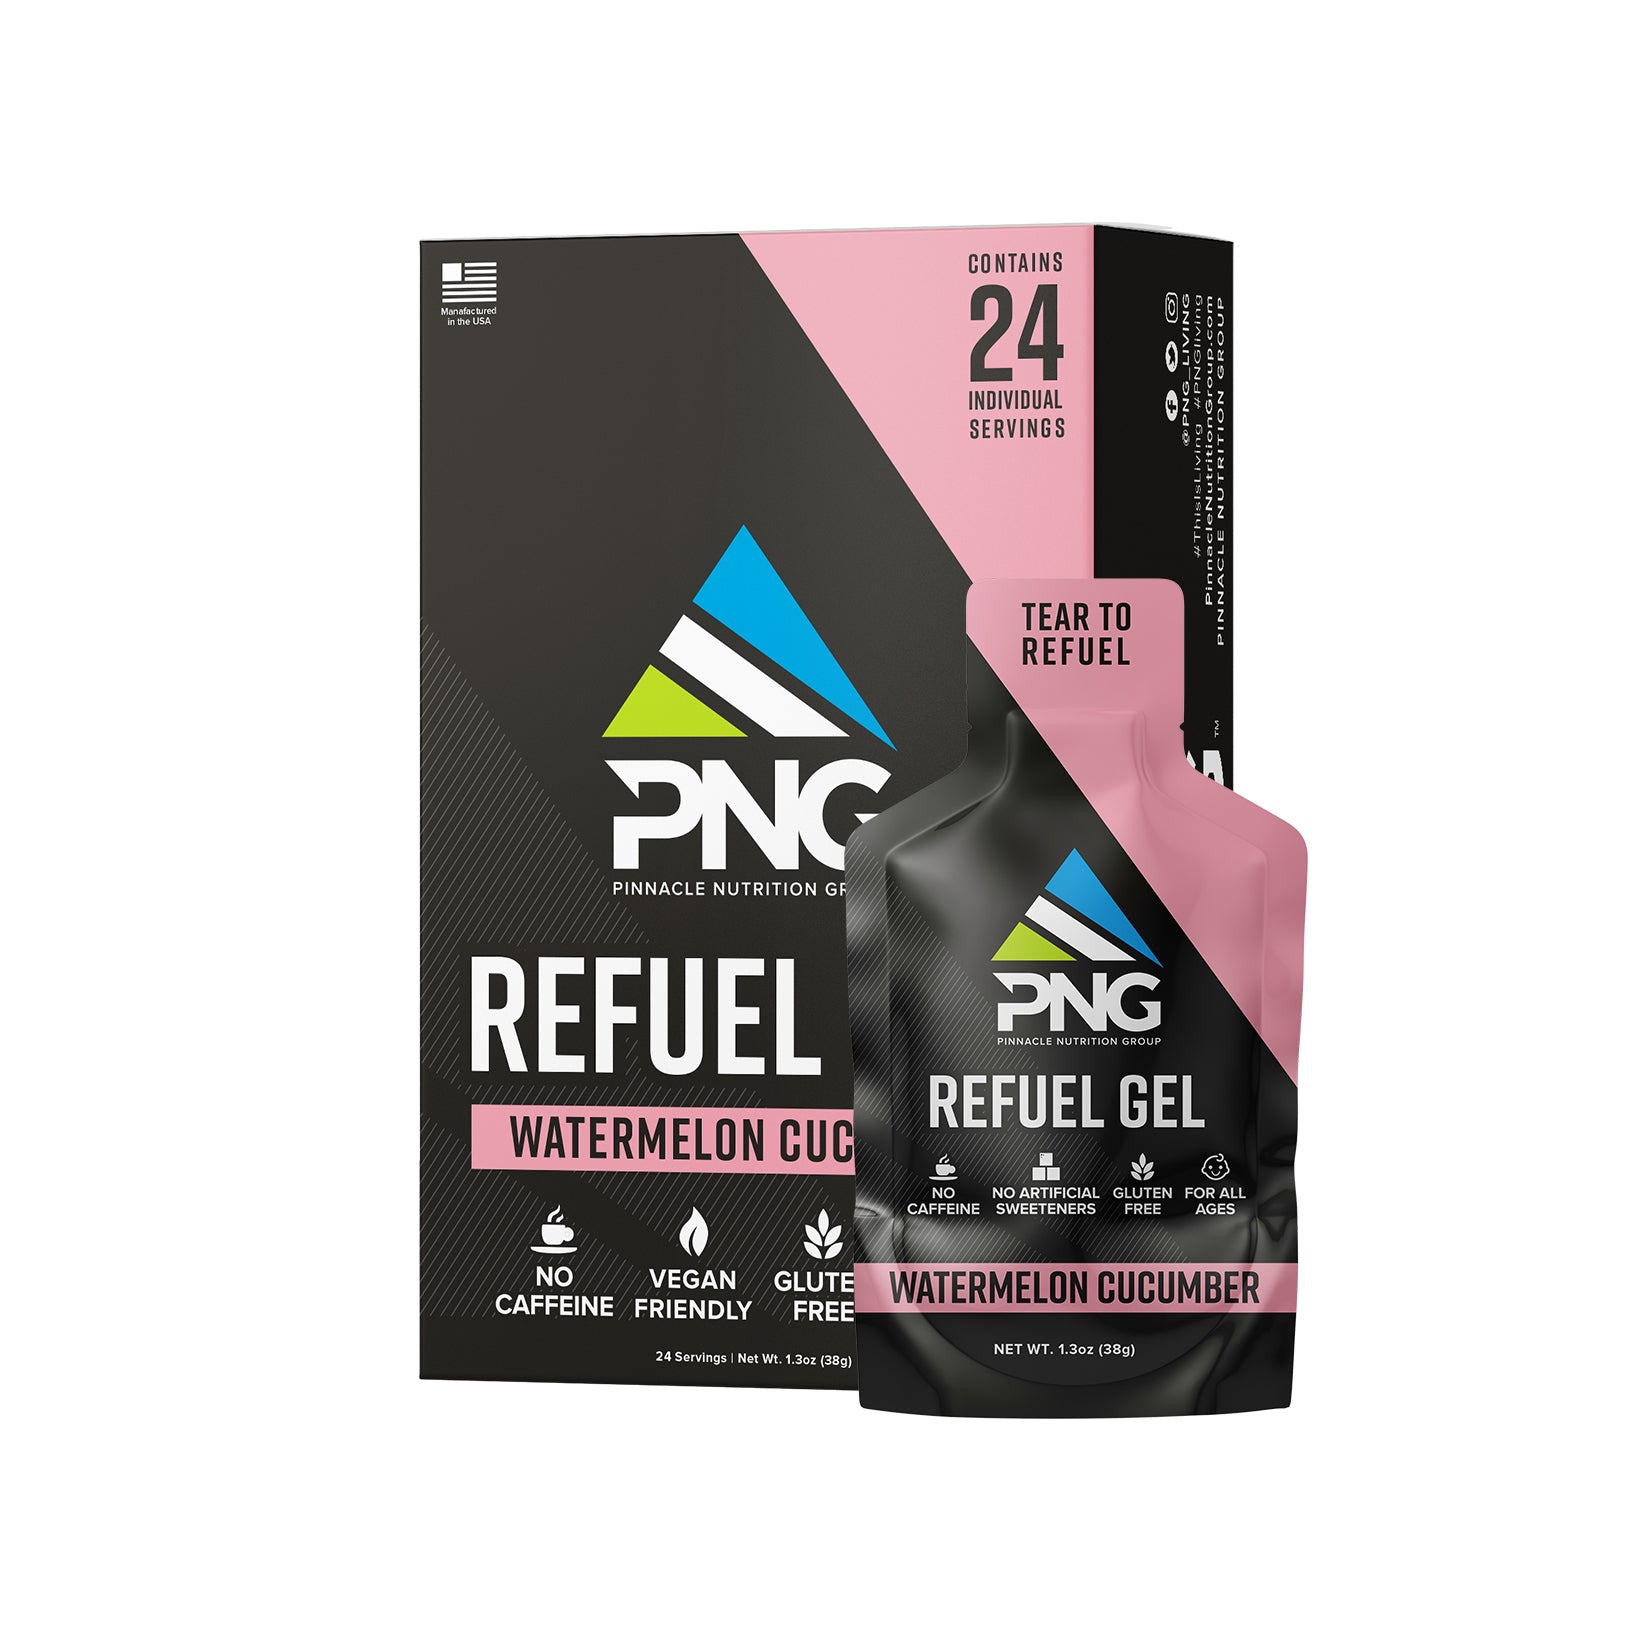 Refuel Gel - Pinnacle Nutrition Group